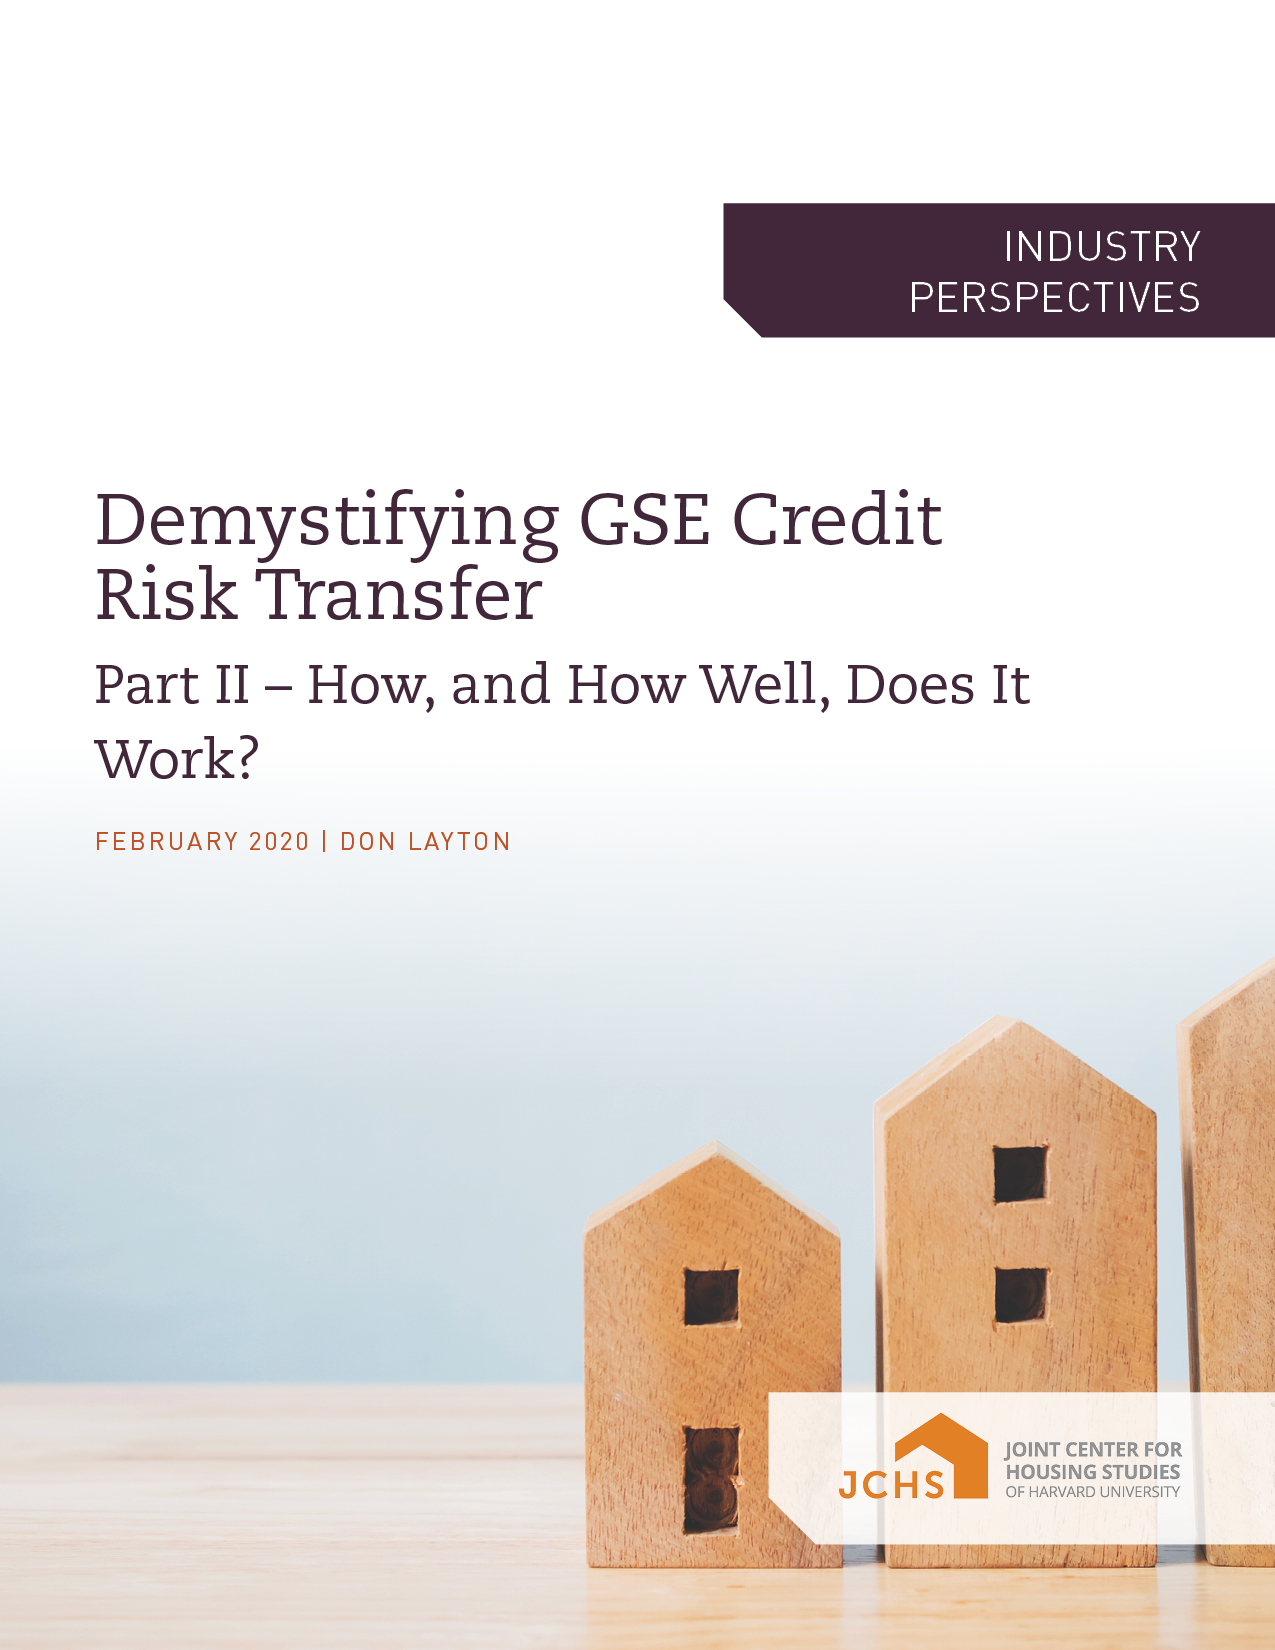 Demystifying GSE Credit Risk Transfer: Part II - How, and How Well, Does It Work?